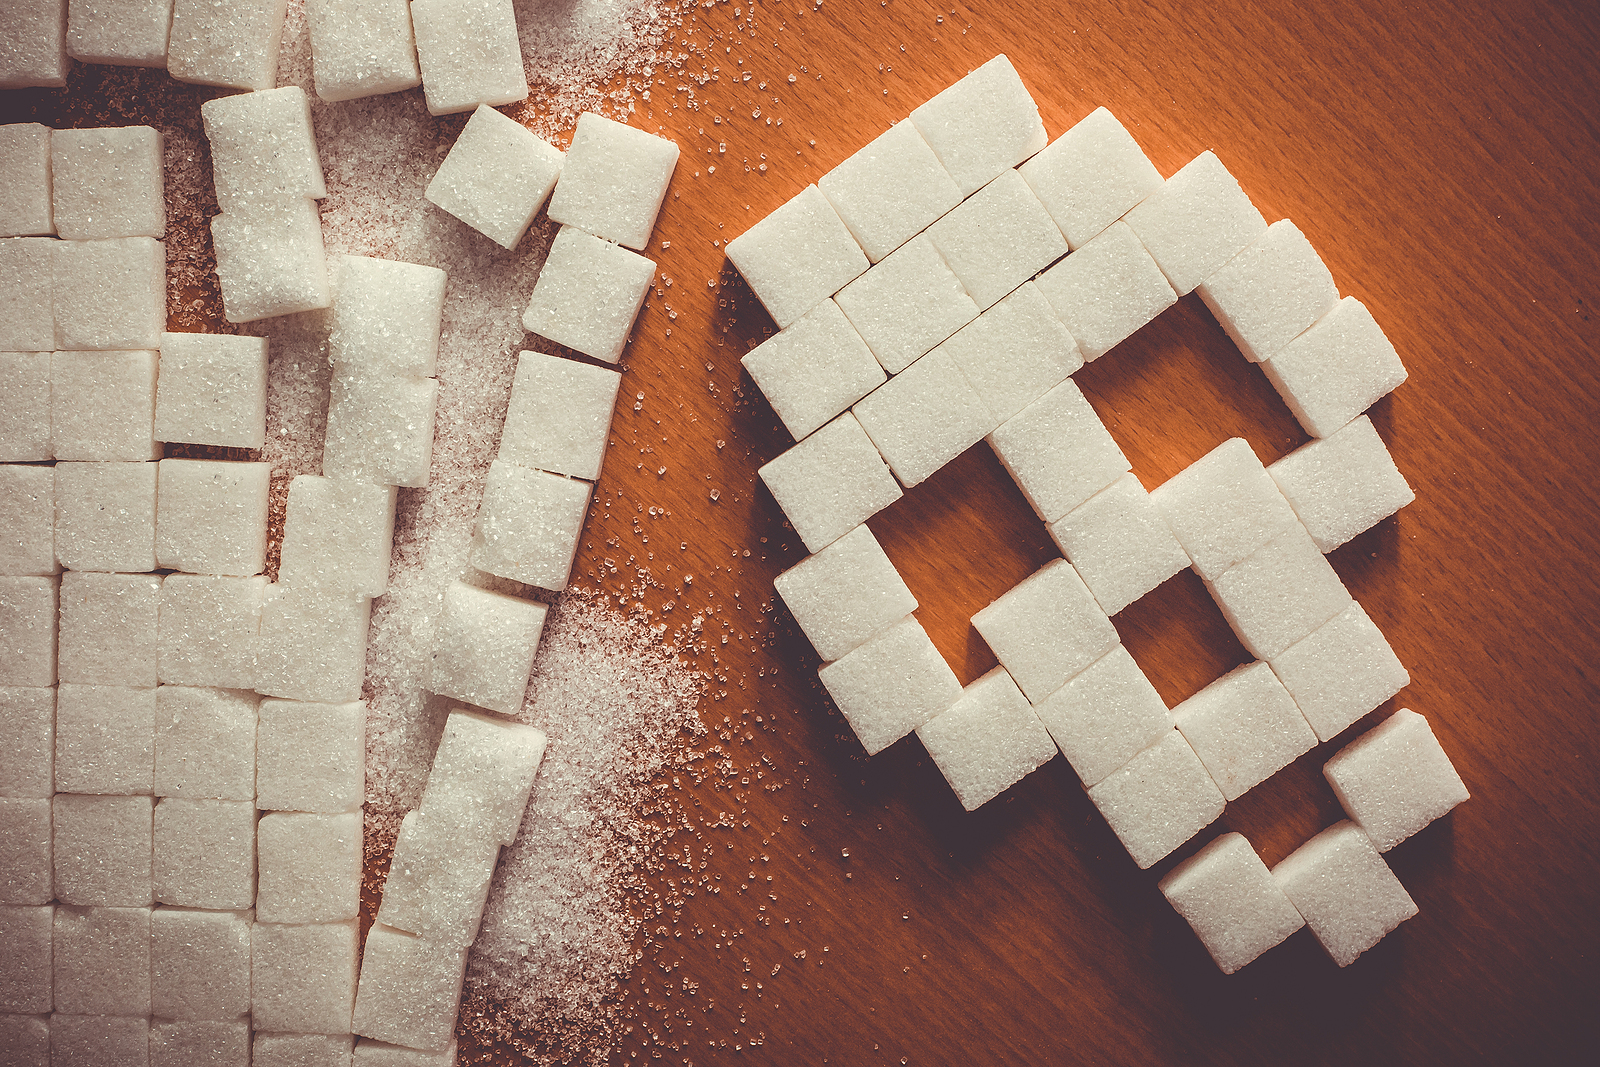 Processed food sugars could also cause bipolar